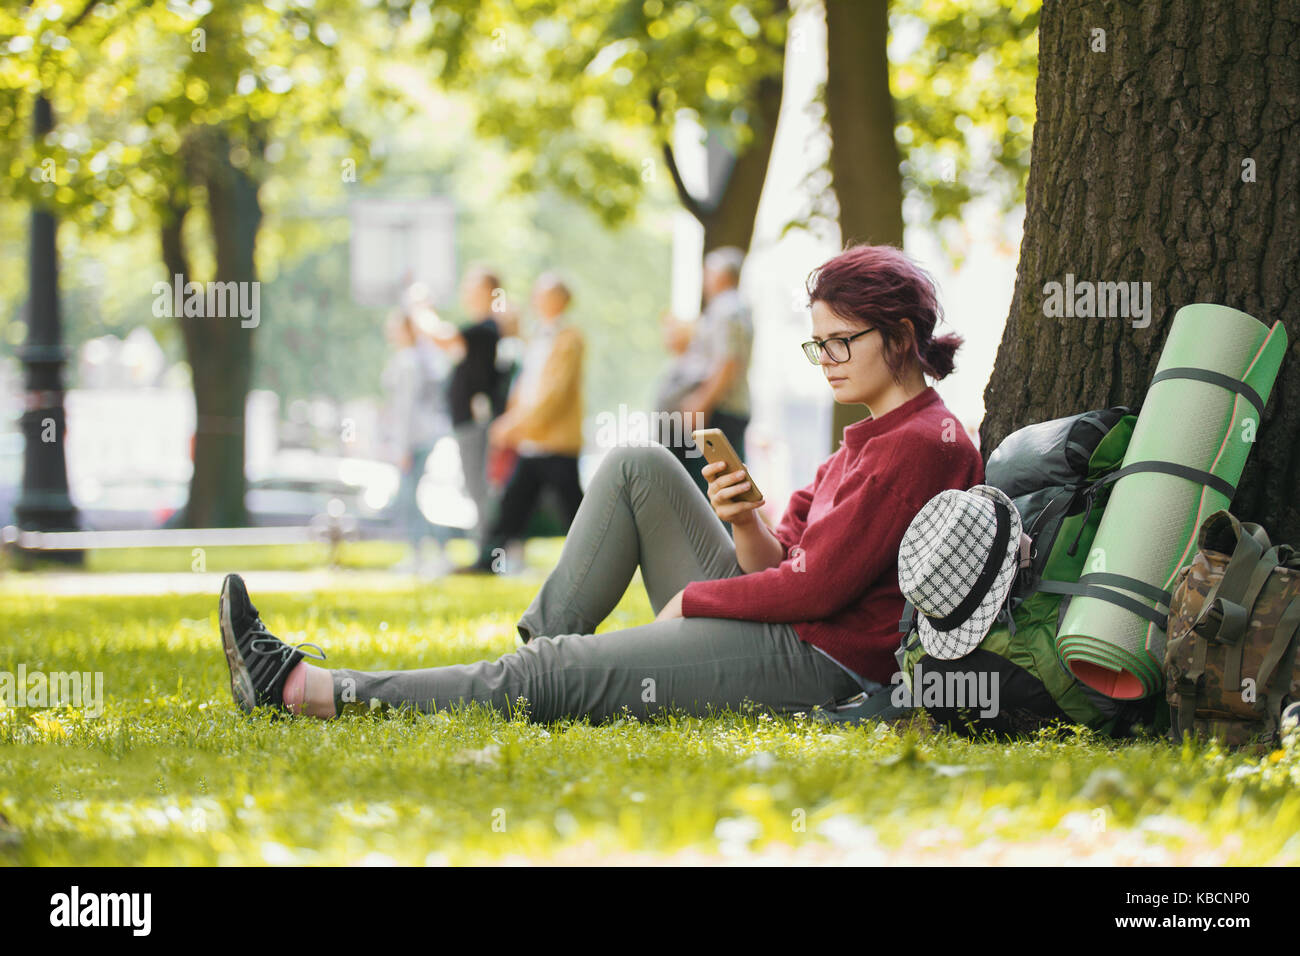 Girl teenager tourist with backpack looking at smartphone in city park - Stock Image